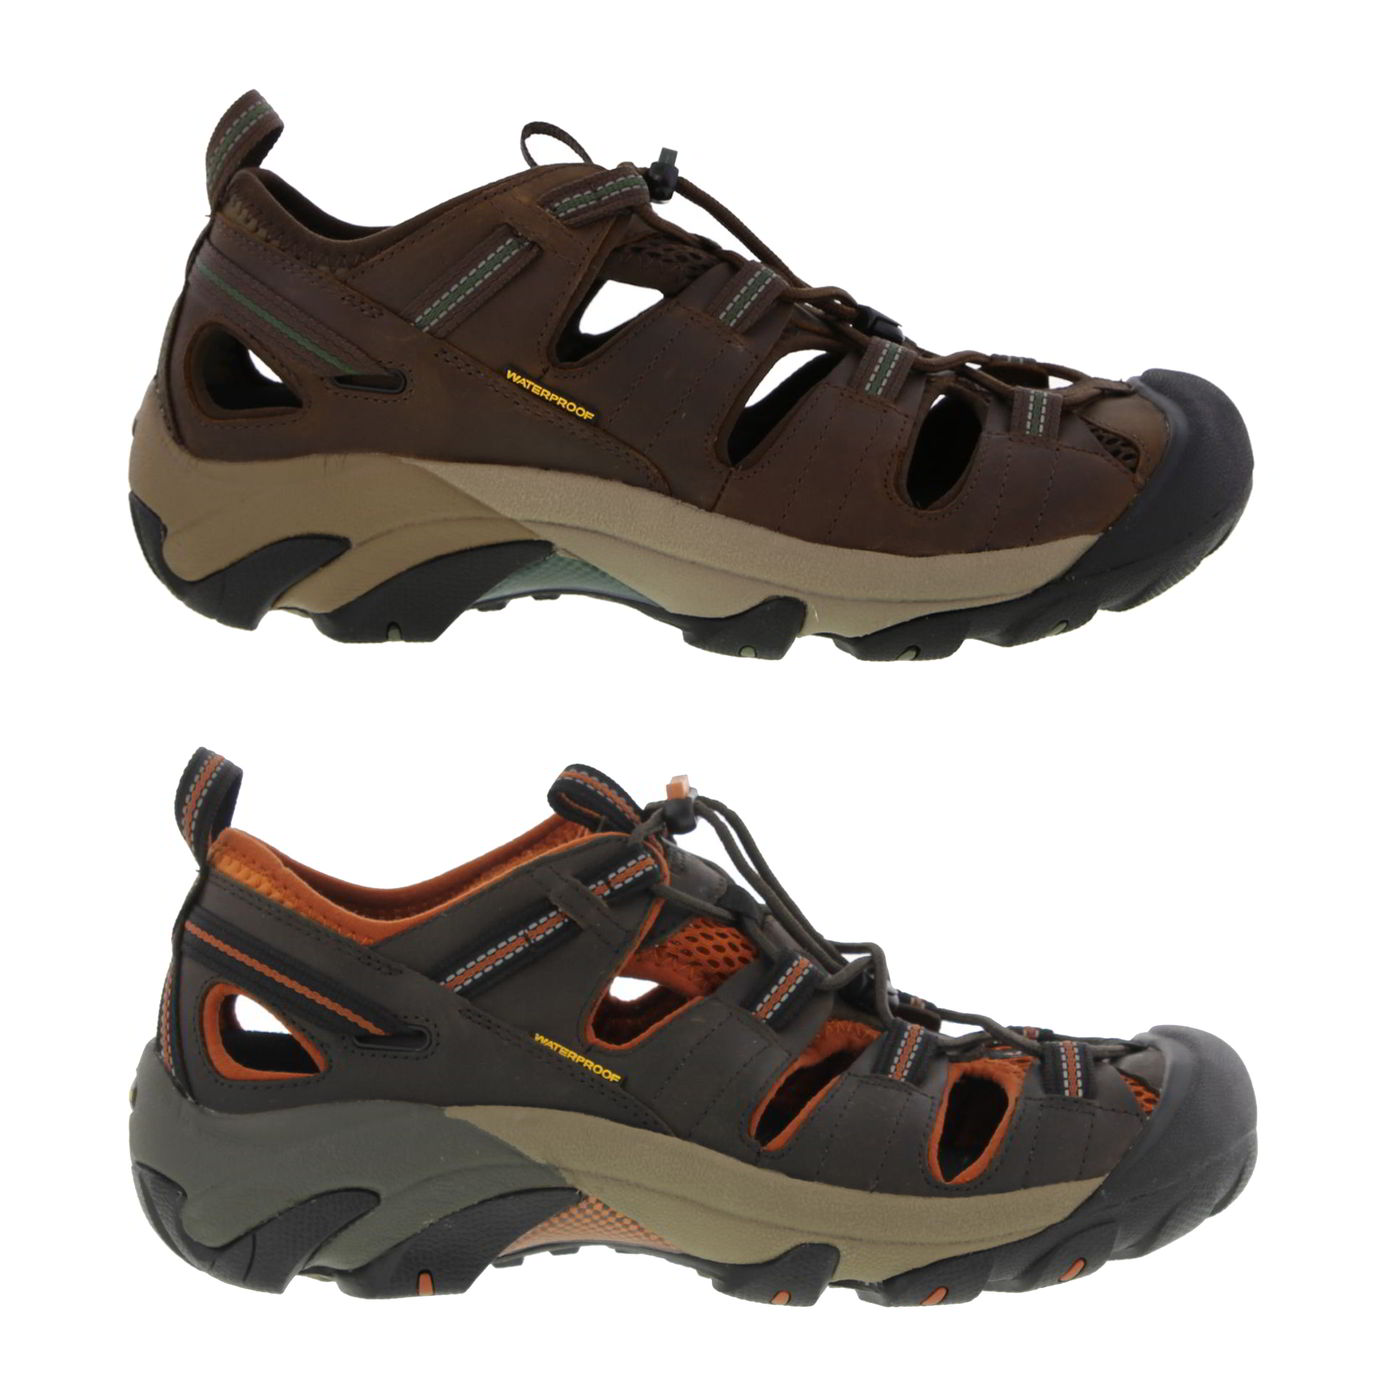 fc2b9e23f252 Details about Keen Arroyo II Mens Adjustable Walking Water Sandals Size 8-14